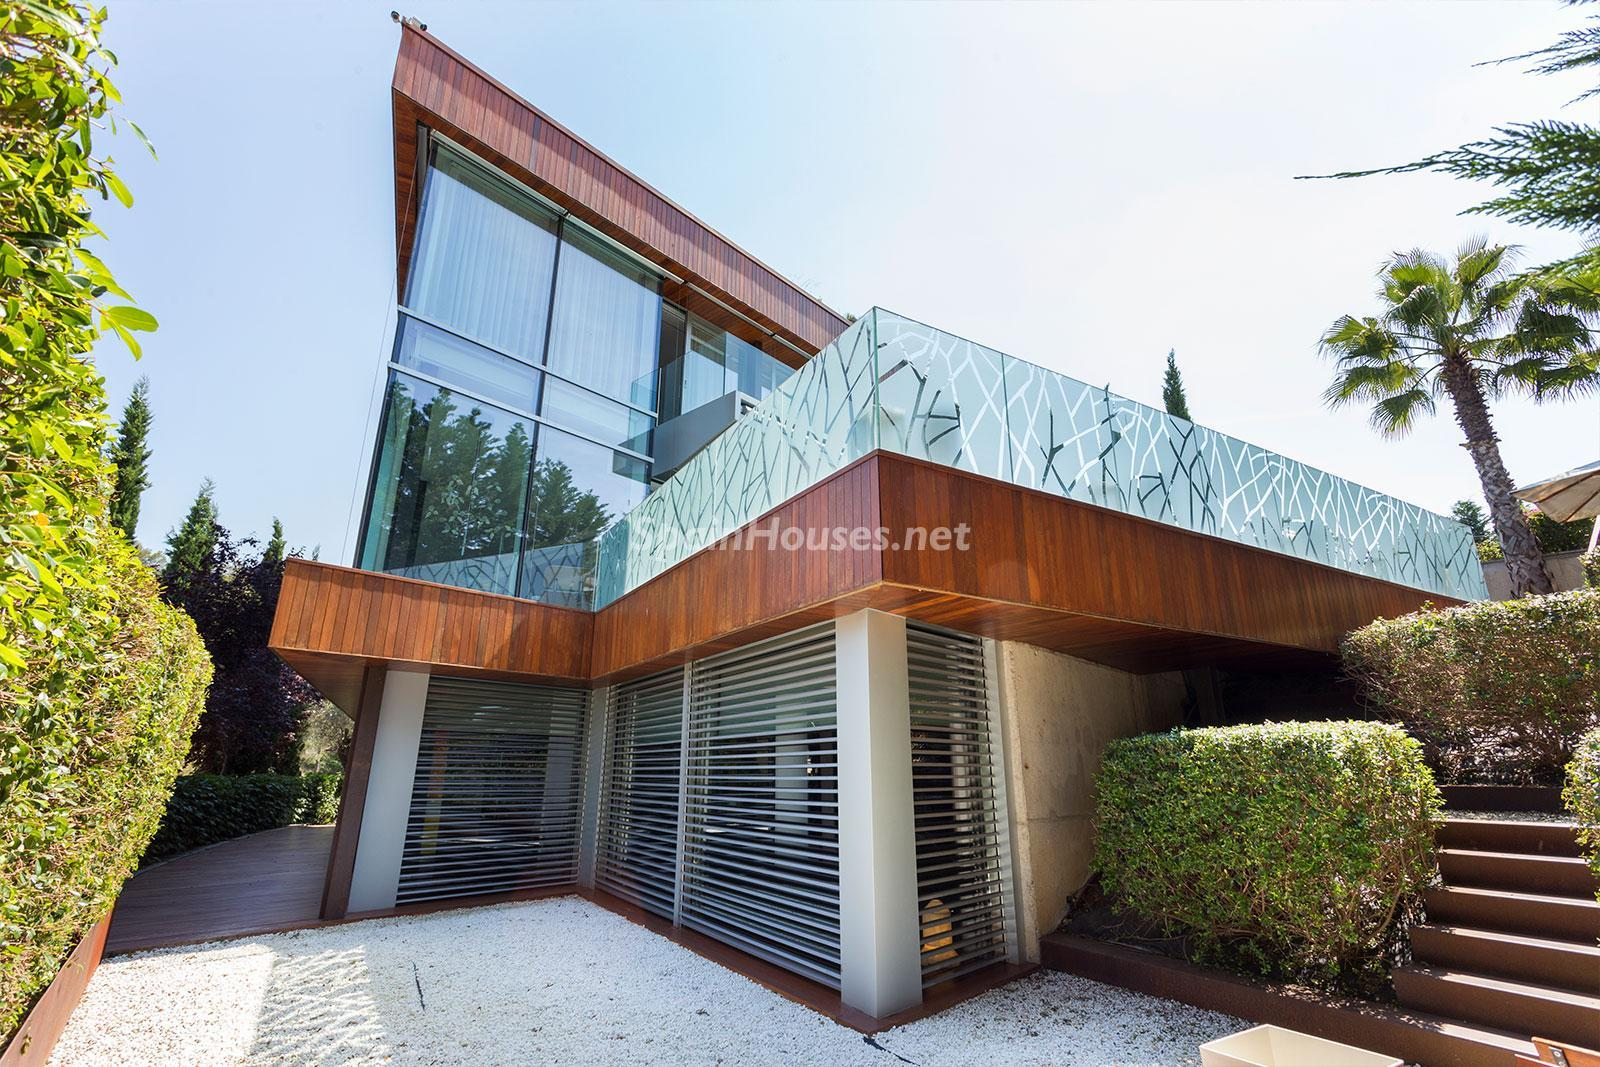 24. House for sale in Barcelona city - Superb 5 bed home in Barcelona features 2 swimming pools and a huge garden